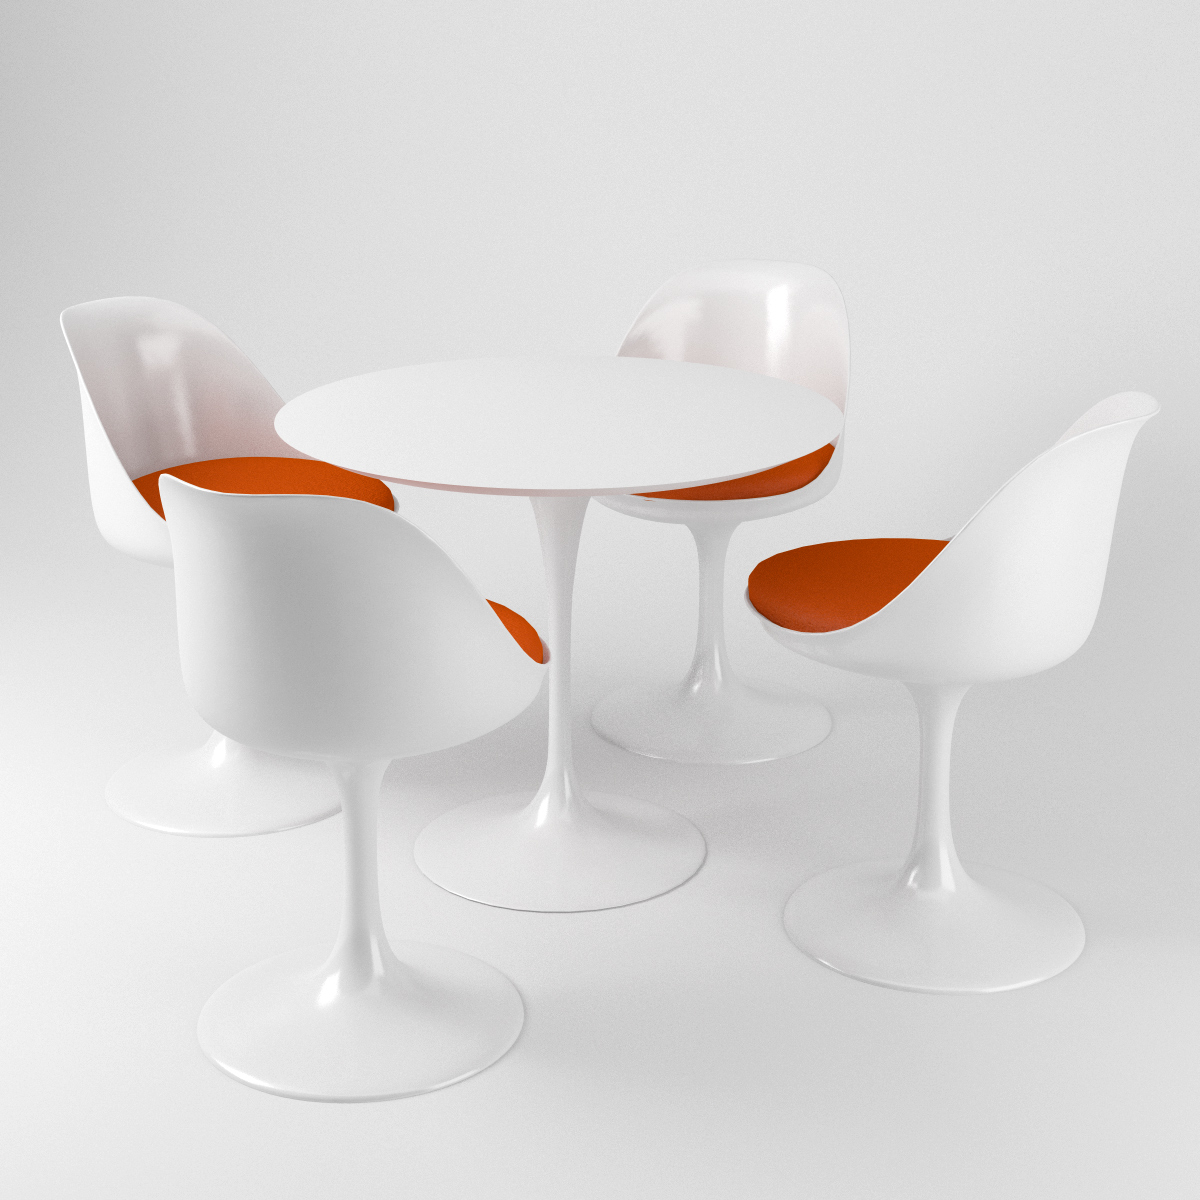 Saarinen Tulip Table Chairs 3d Model Turbosquid 1243814